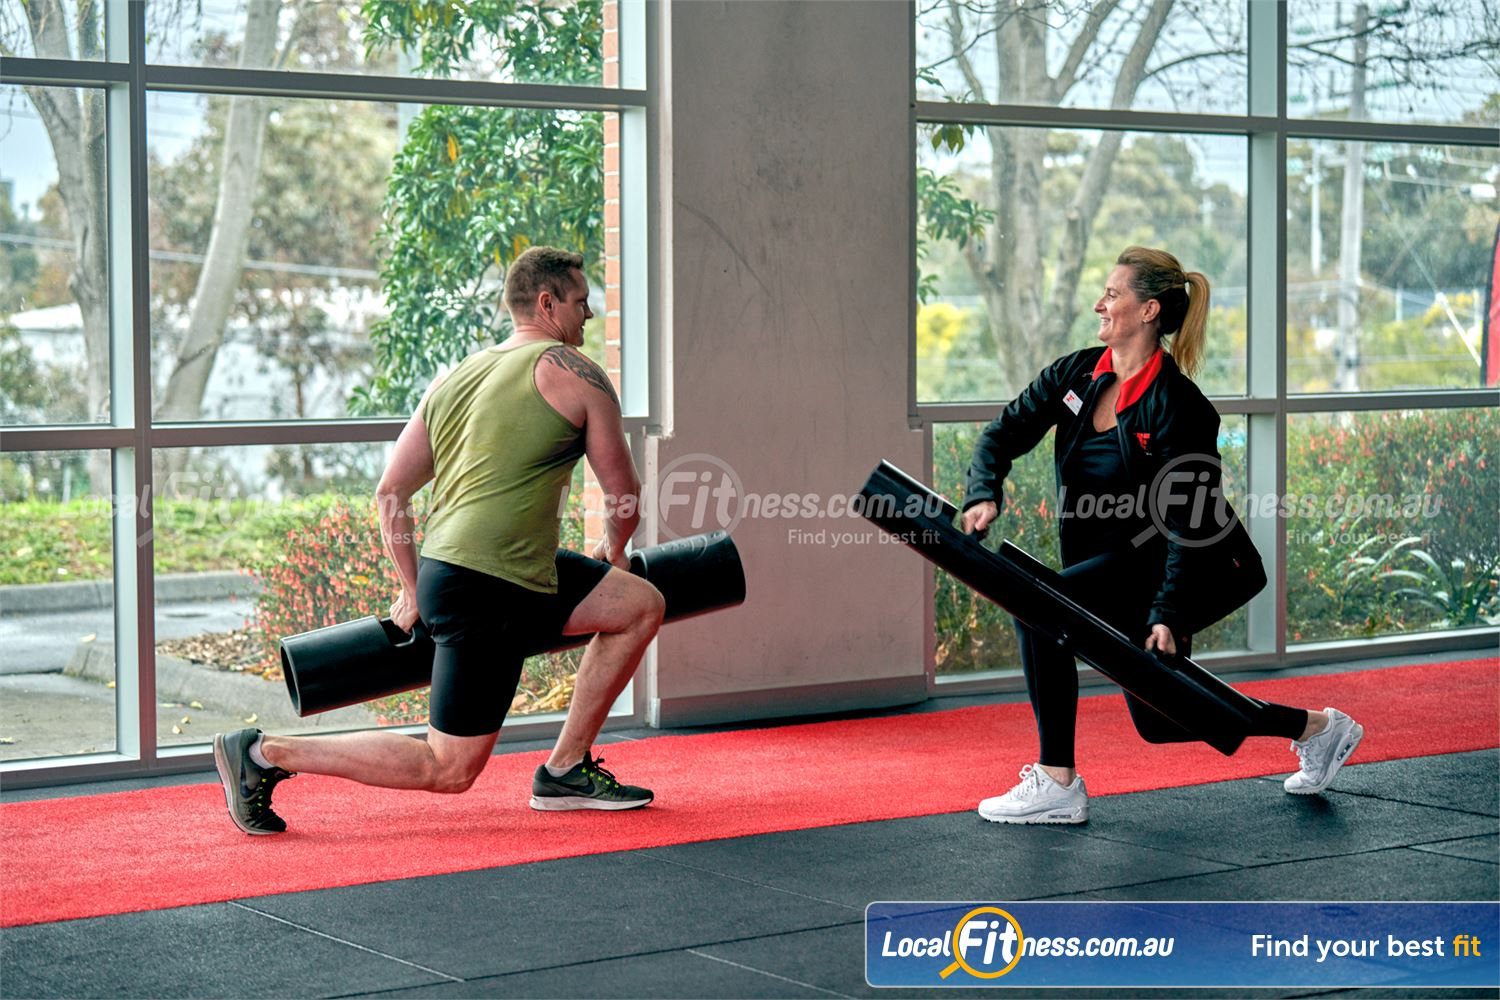 Fitness First Malvern Valley Near Murrumbeena Get a full body workout with ViPR training in Chadstone.